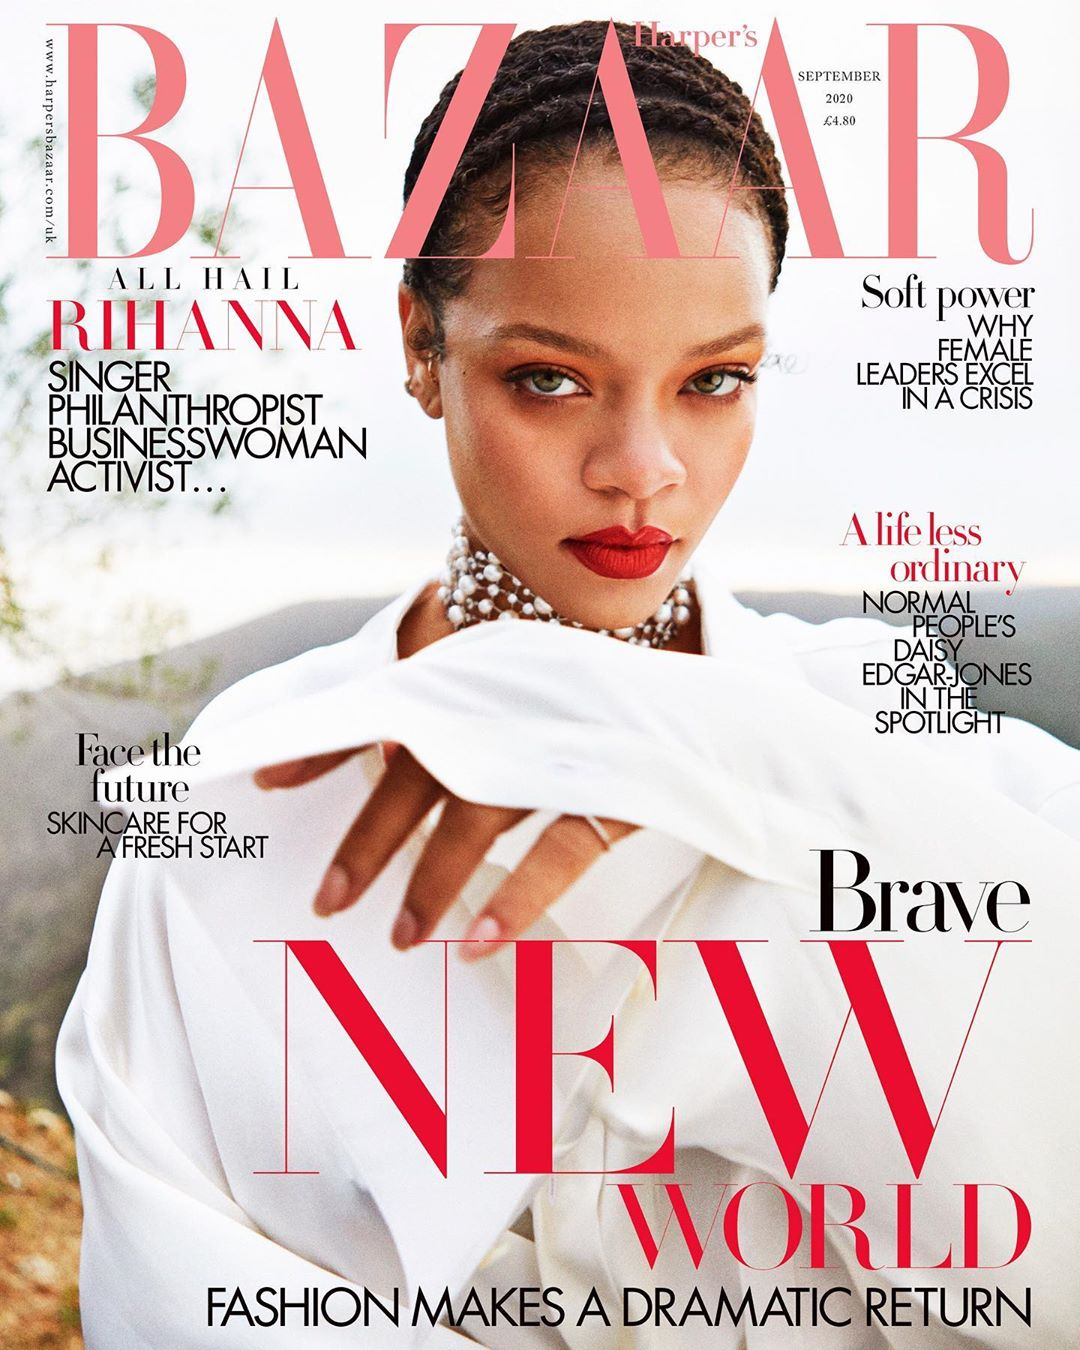 RIHANNA - HARPER'S BAZAAR MAGAZINE UK SEPTEMBER 2020 BRITISH EDITION NEW